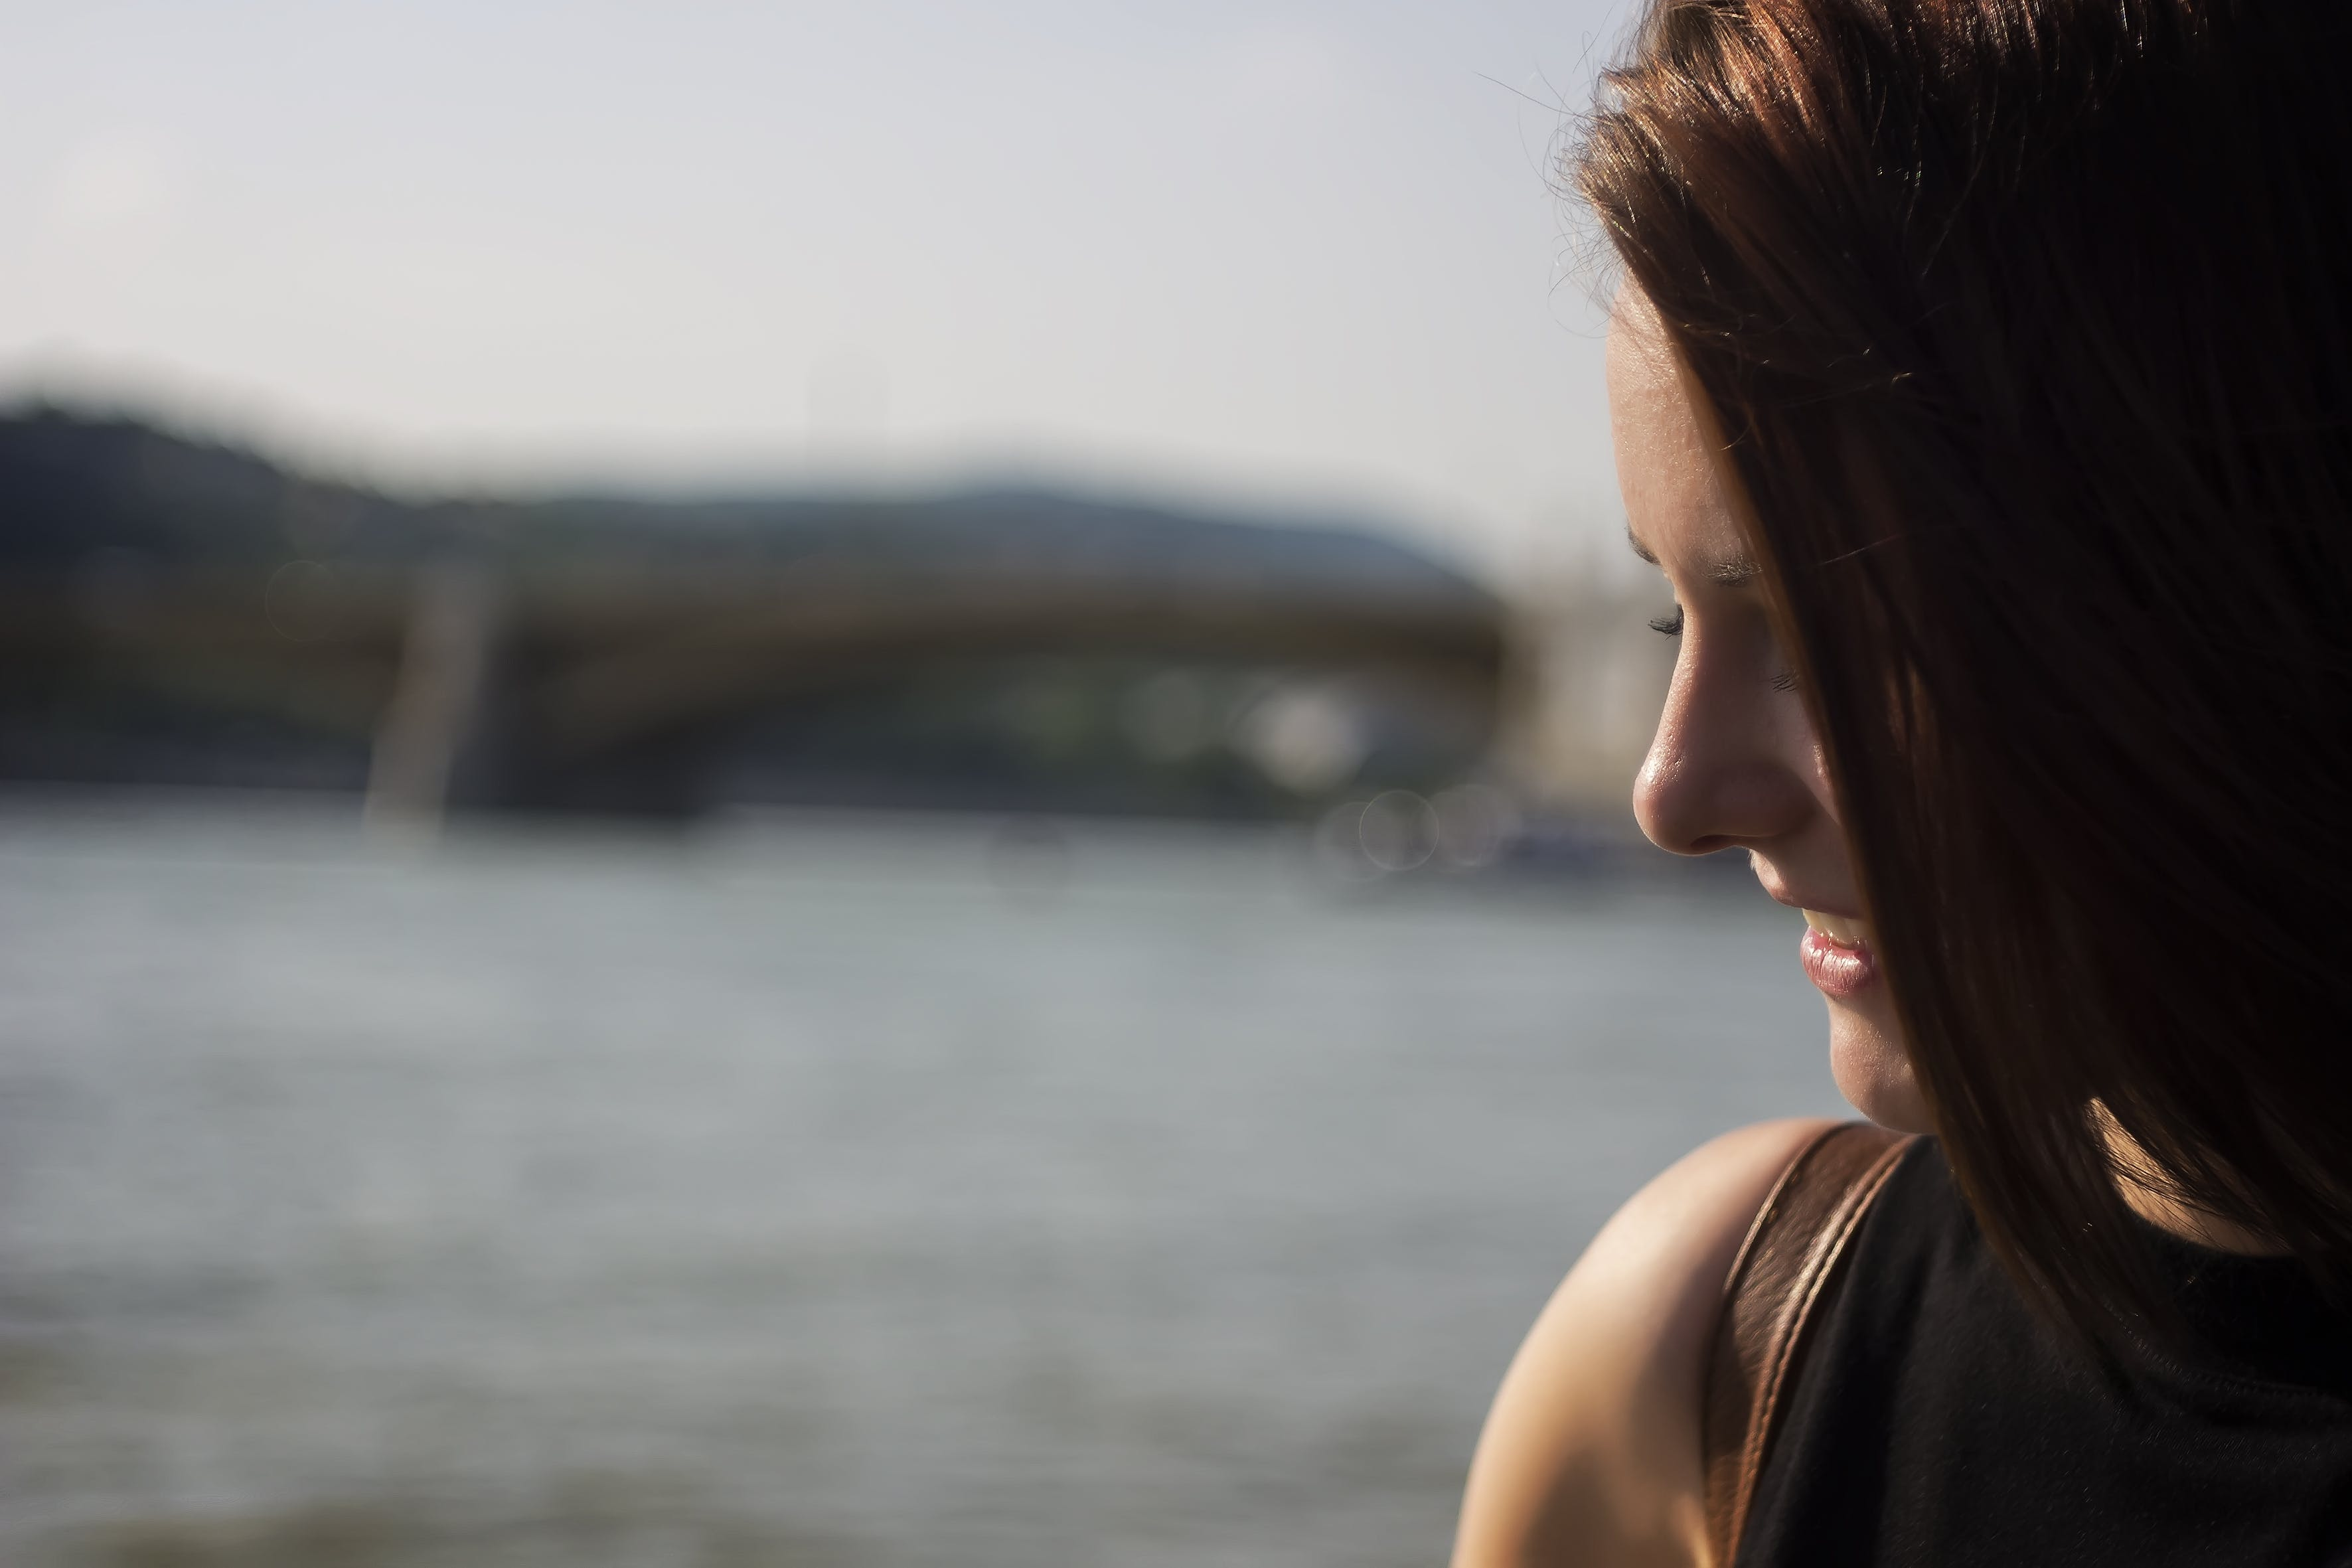 Close Up Photography of Side View Angle of a Woman Smiling Near Seawater during Daytime